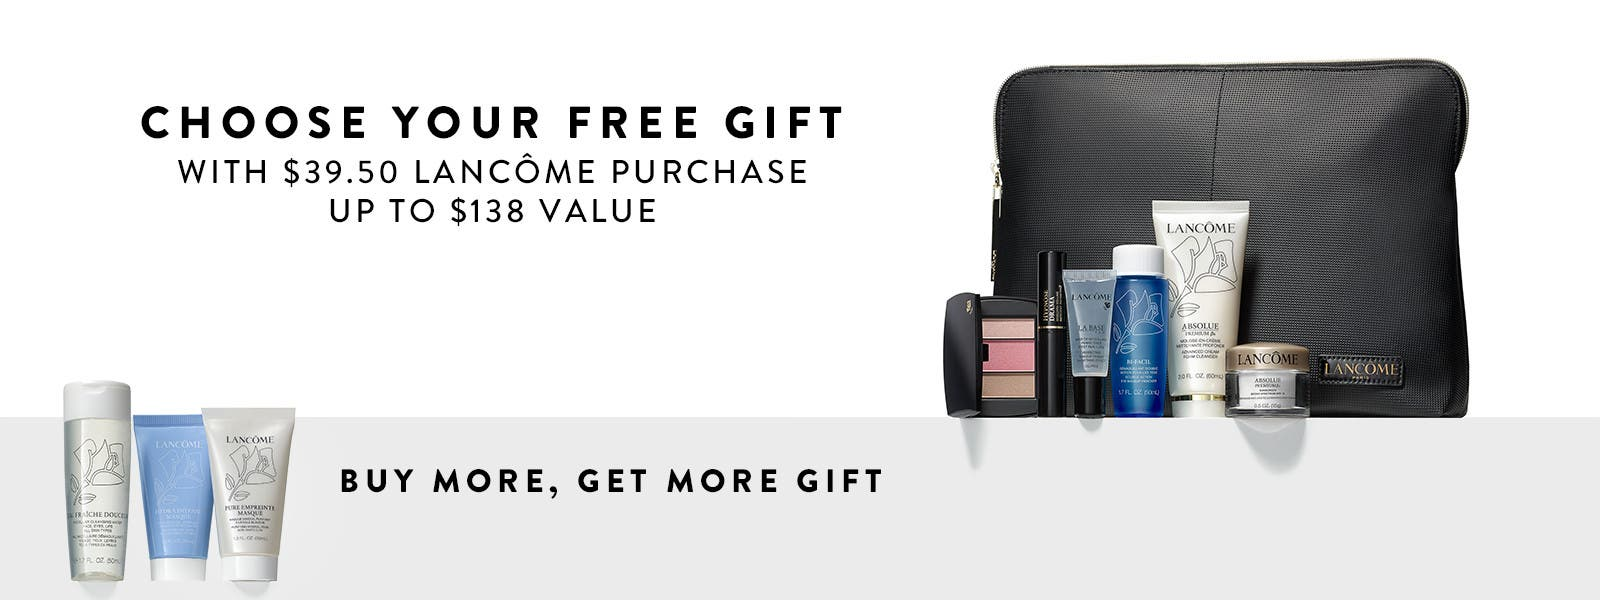 Choose your free gift with $39.50 Lancôme purchase. Plus, spend $35.50 more and get a bonus gift. A combined value up to $168.